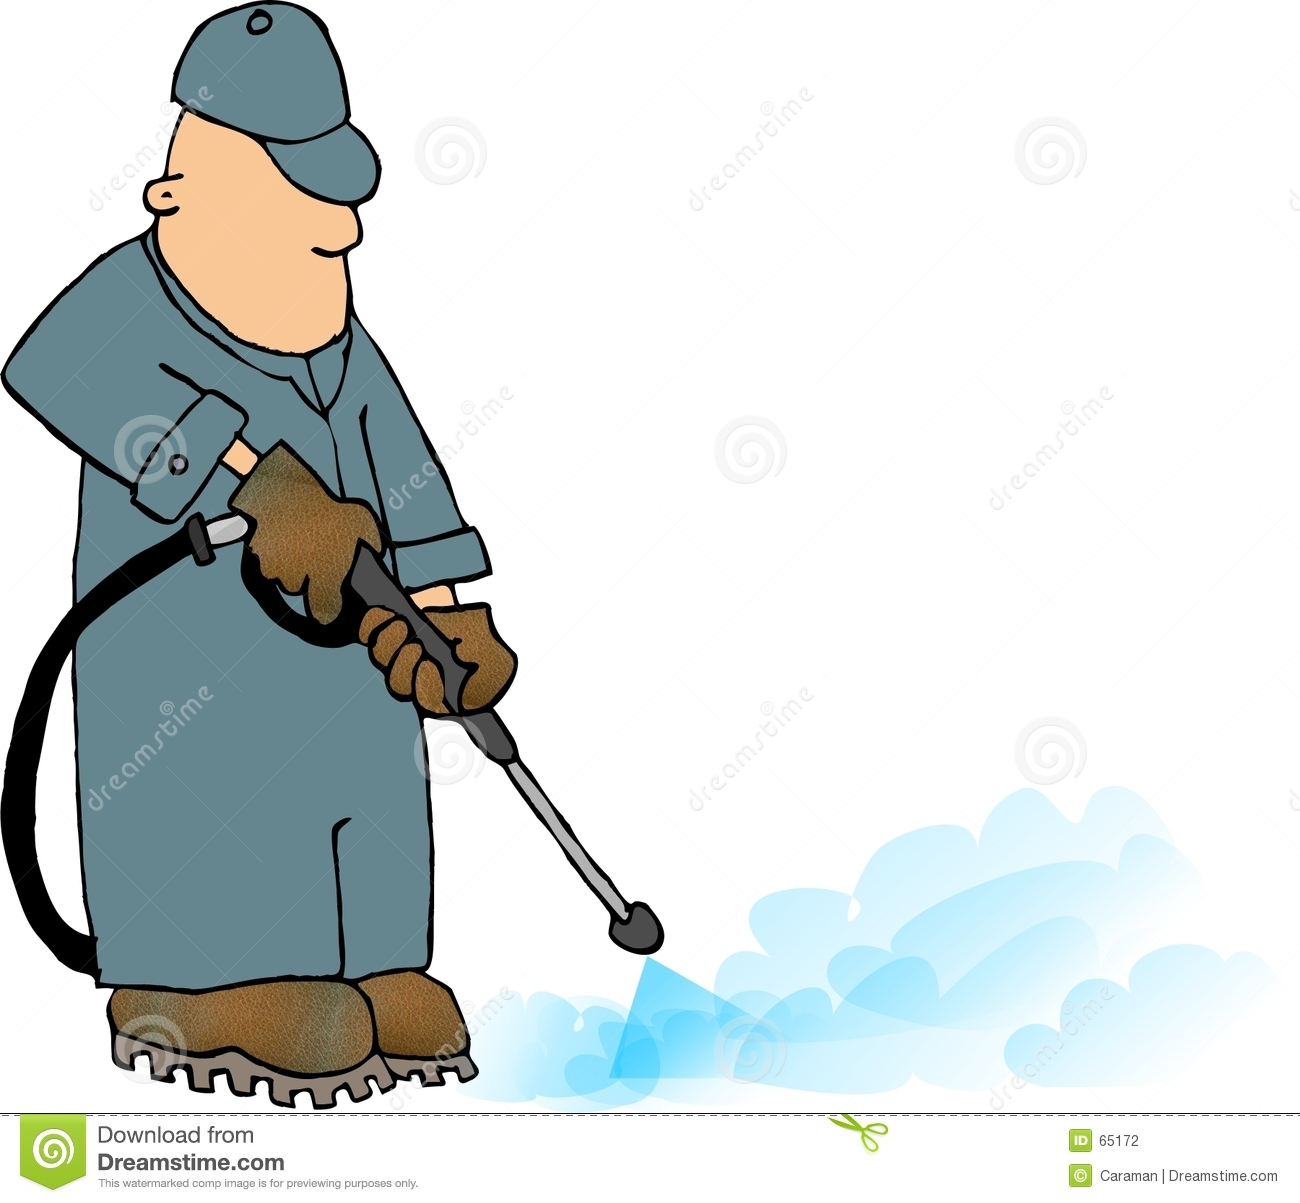 Sandblasting together with Pedal Powered Washer Costs Only 40 And Needs No Electricity also Black Coffee Album Launch likewise Ted Cruz Heres The One Debate Question Id Ask Hillary Clinton moreover Stock Photography Power Washer Image65172. on man power washing